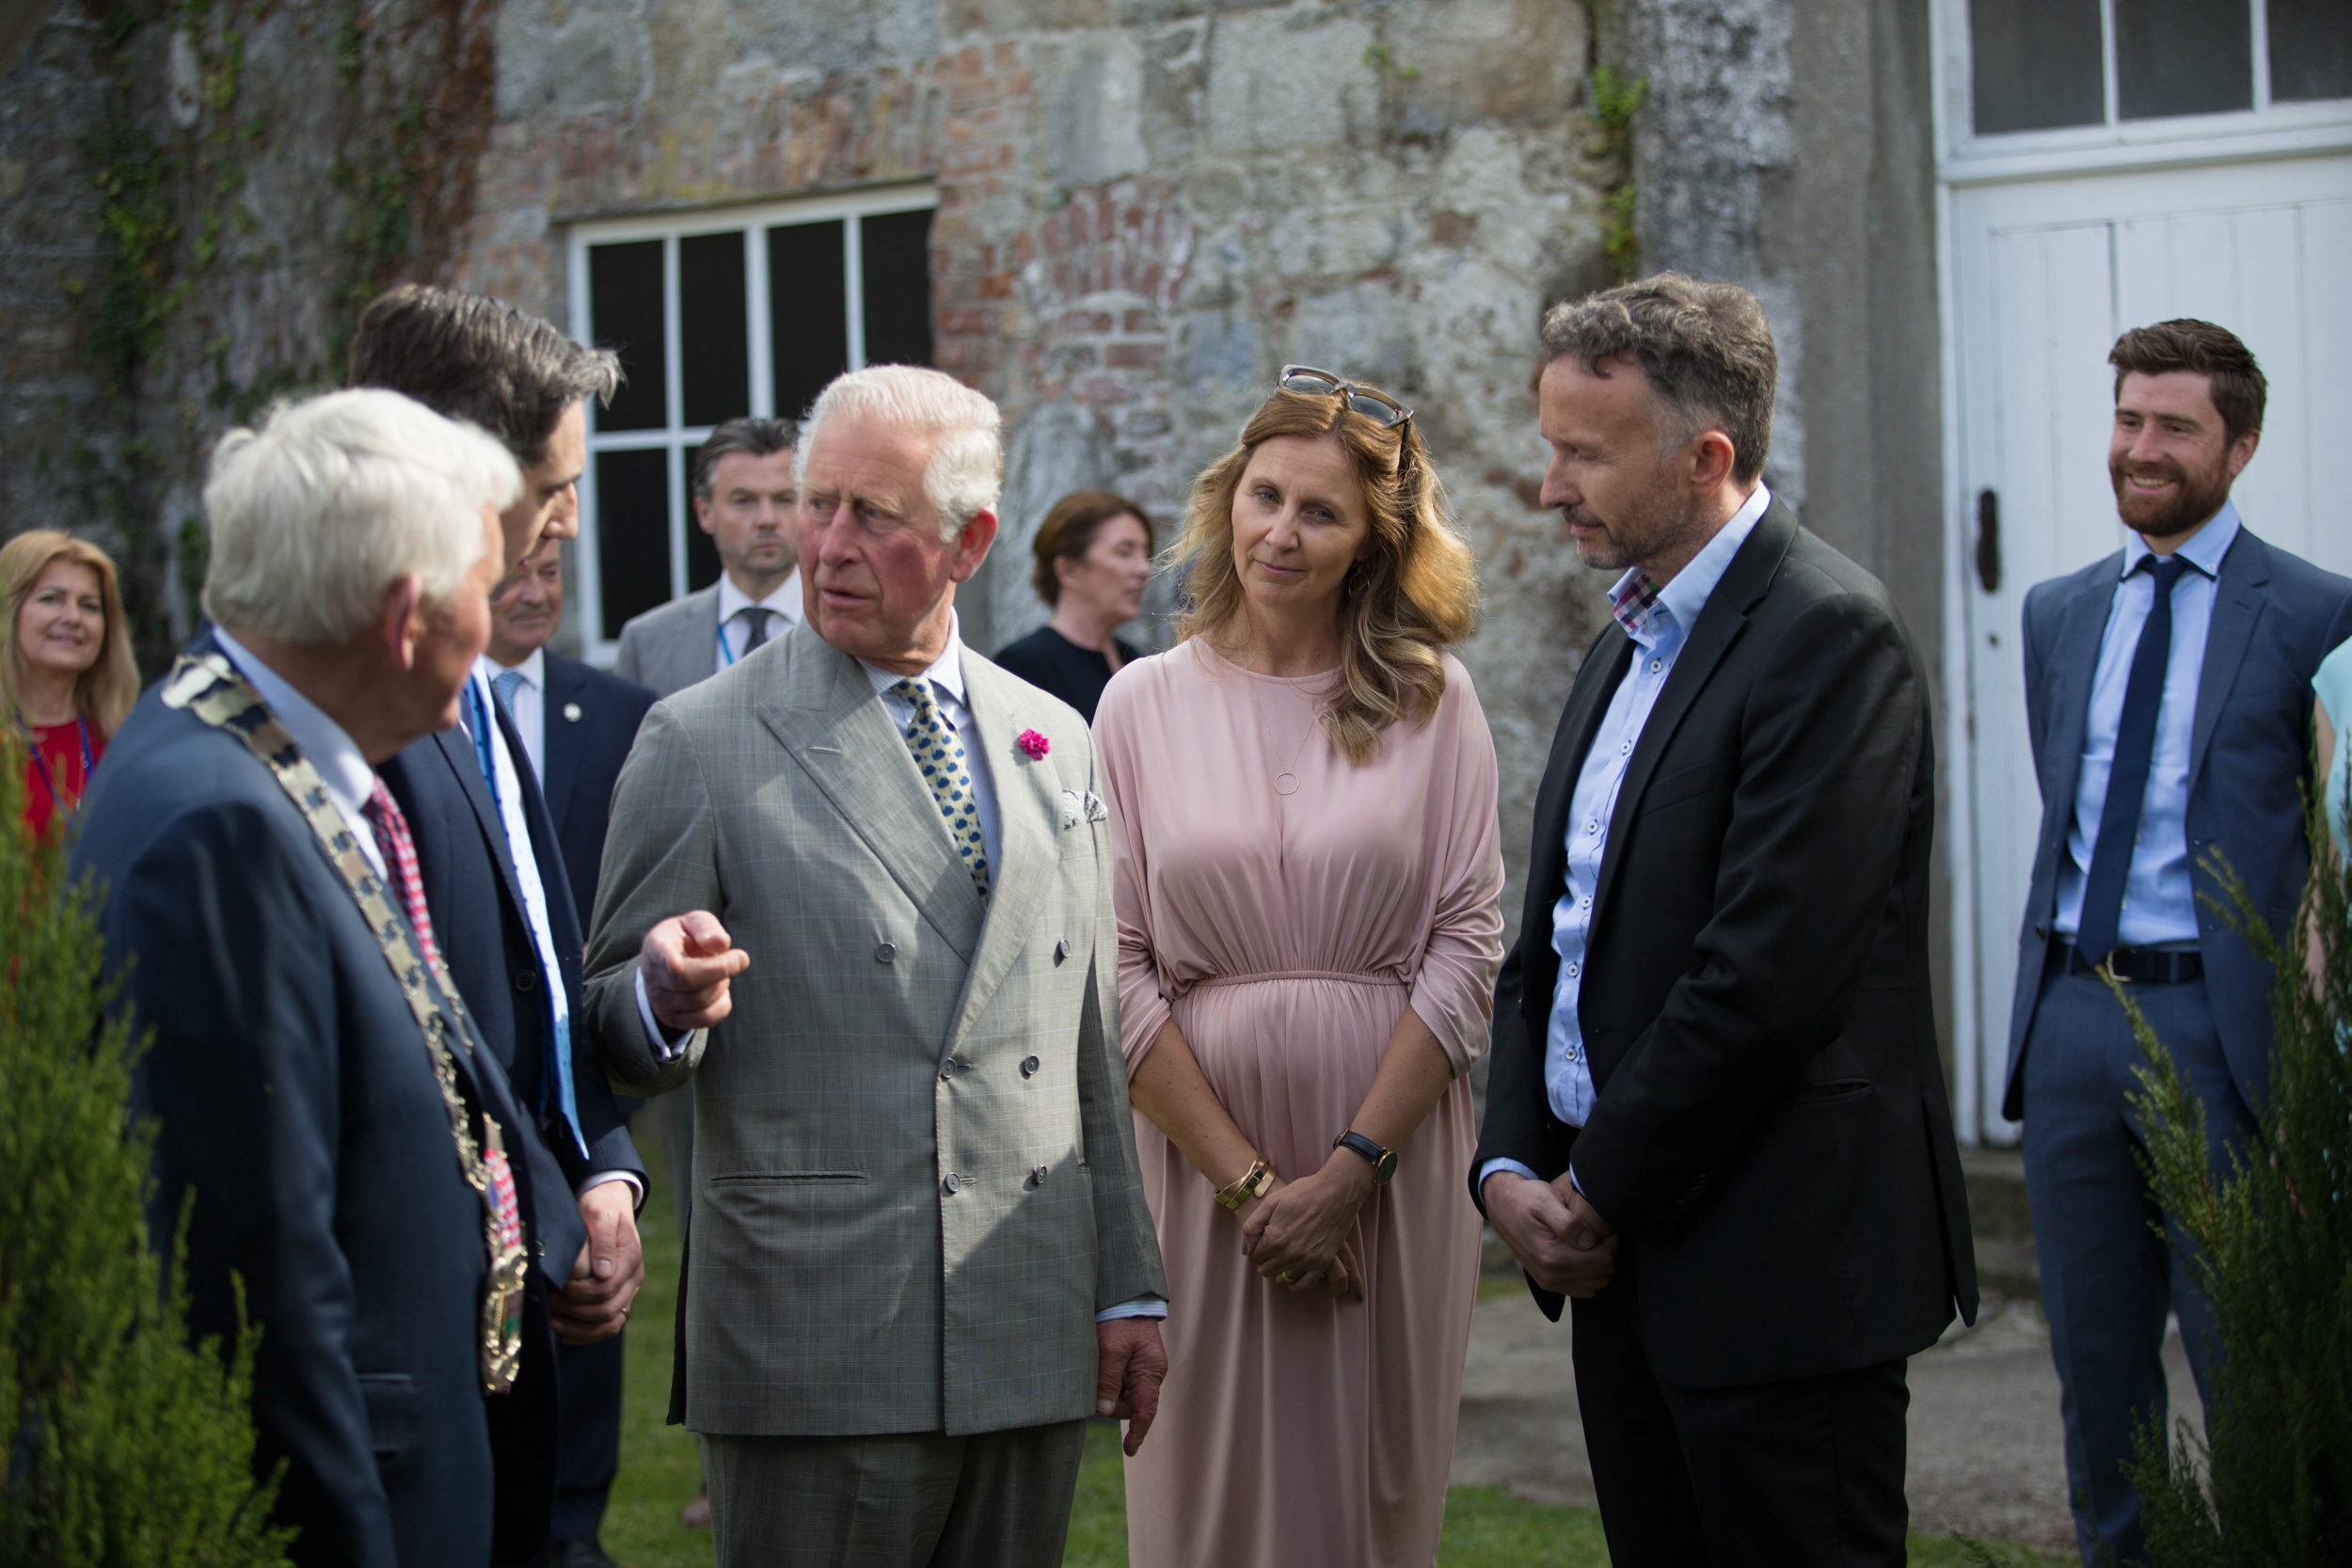 Prince of Wales enjoys a cool experience thanks to Norman